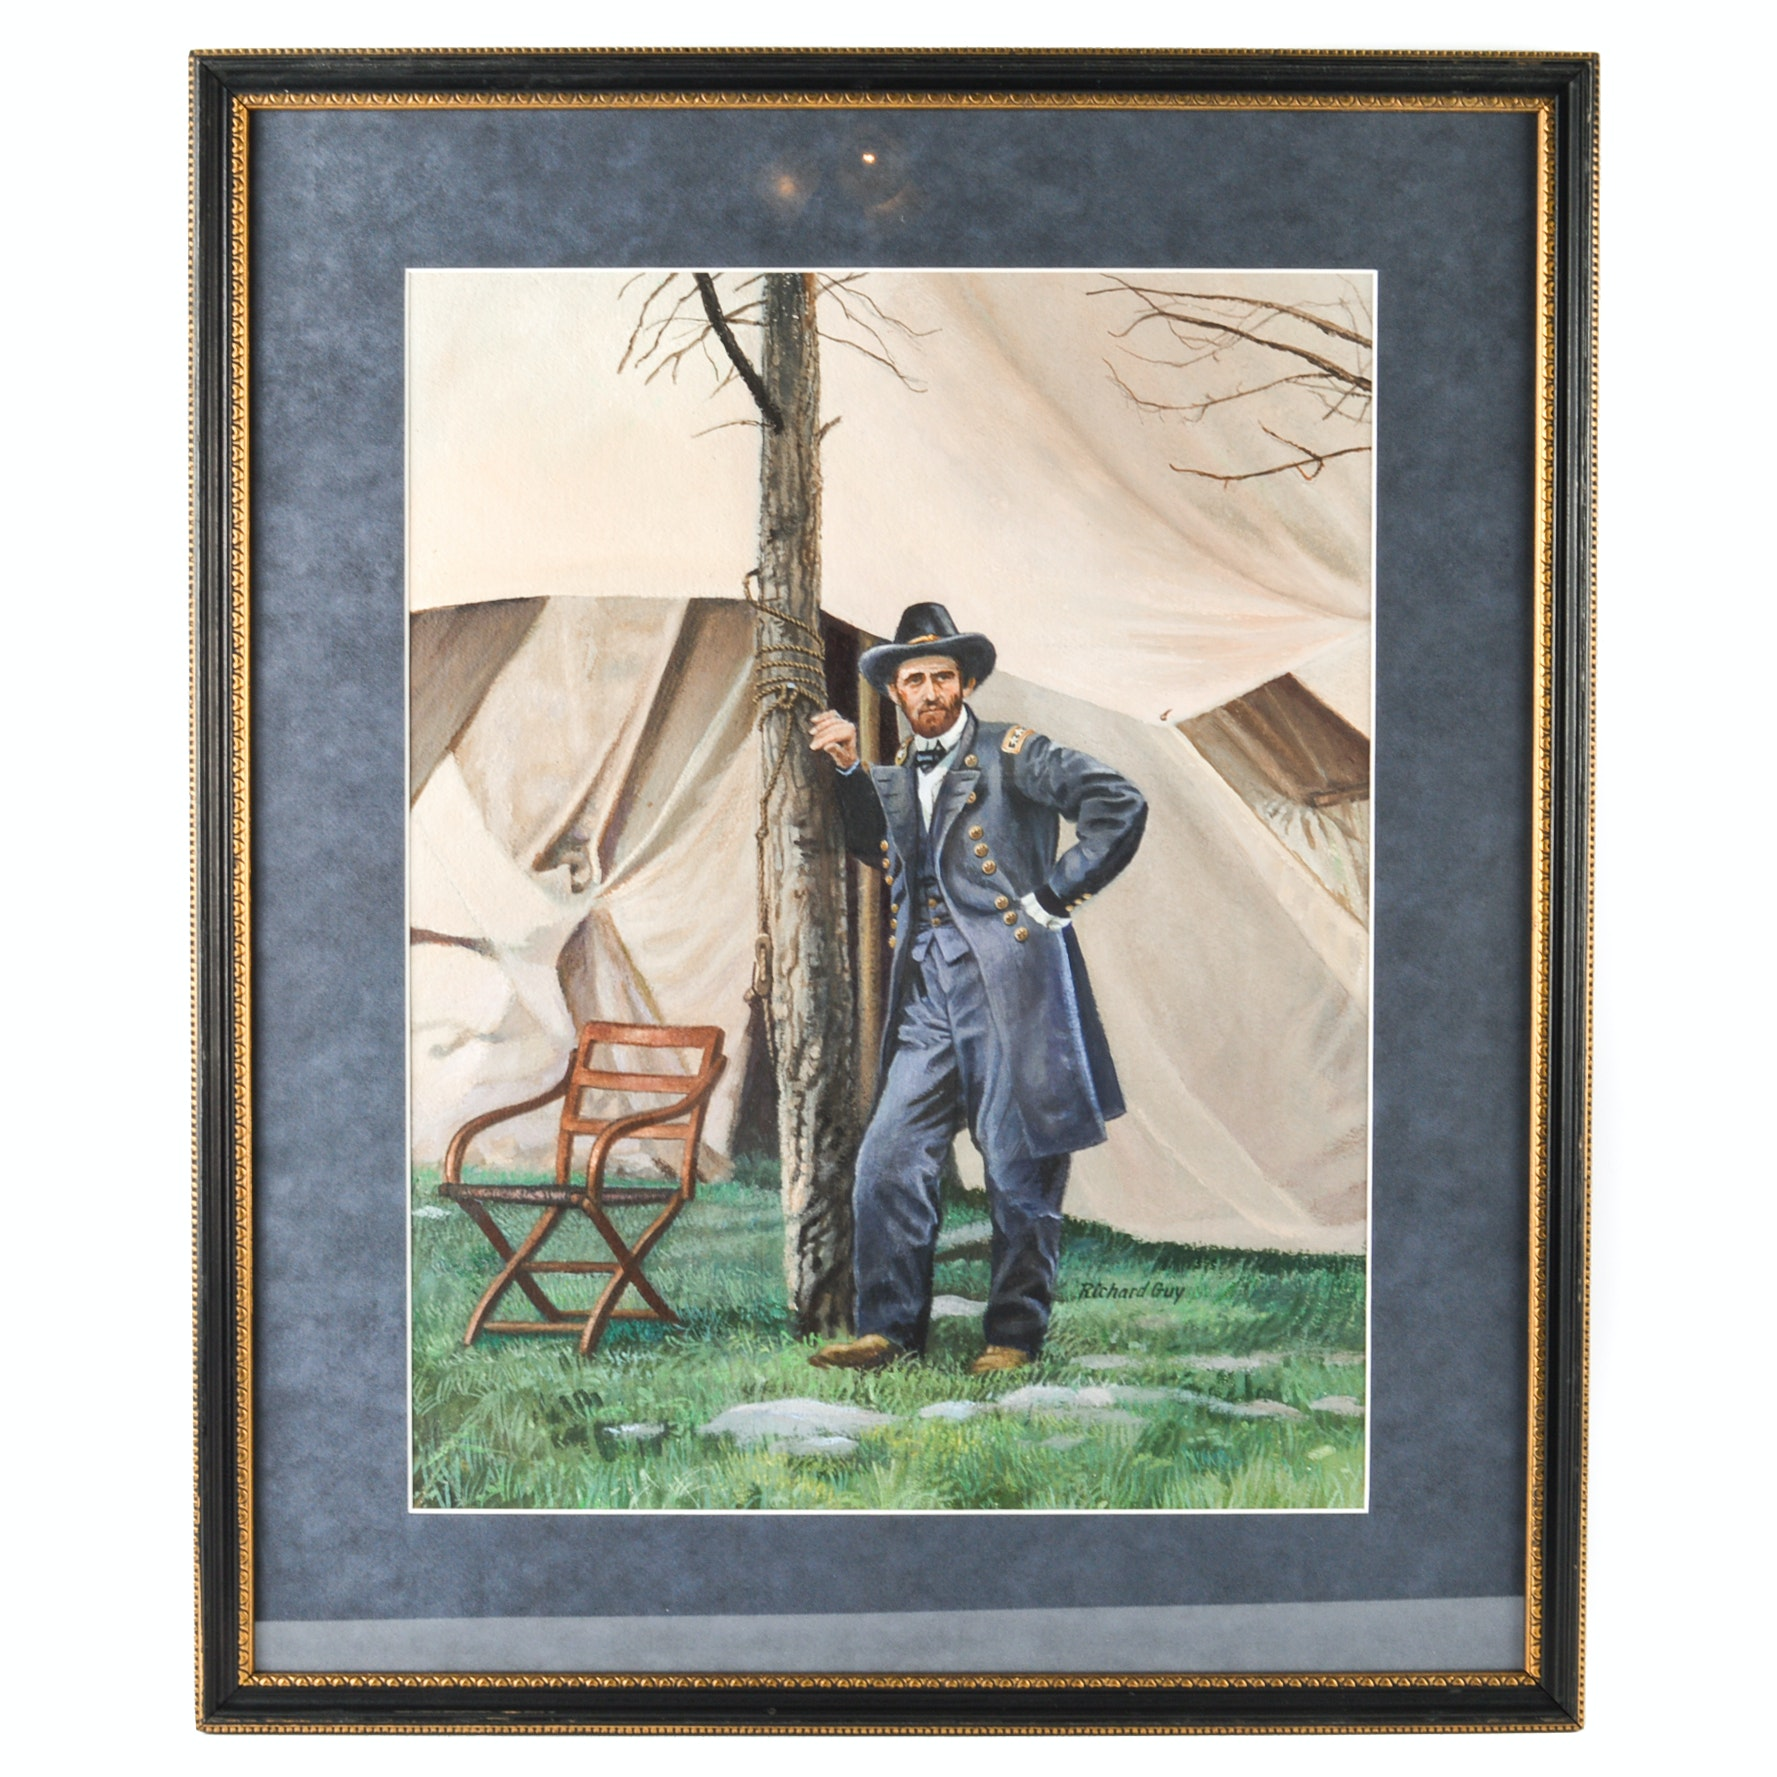 Richard Guy Acrylic on Paper Painting of Ulysses S. Grant